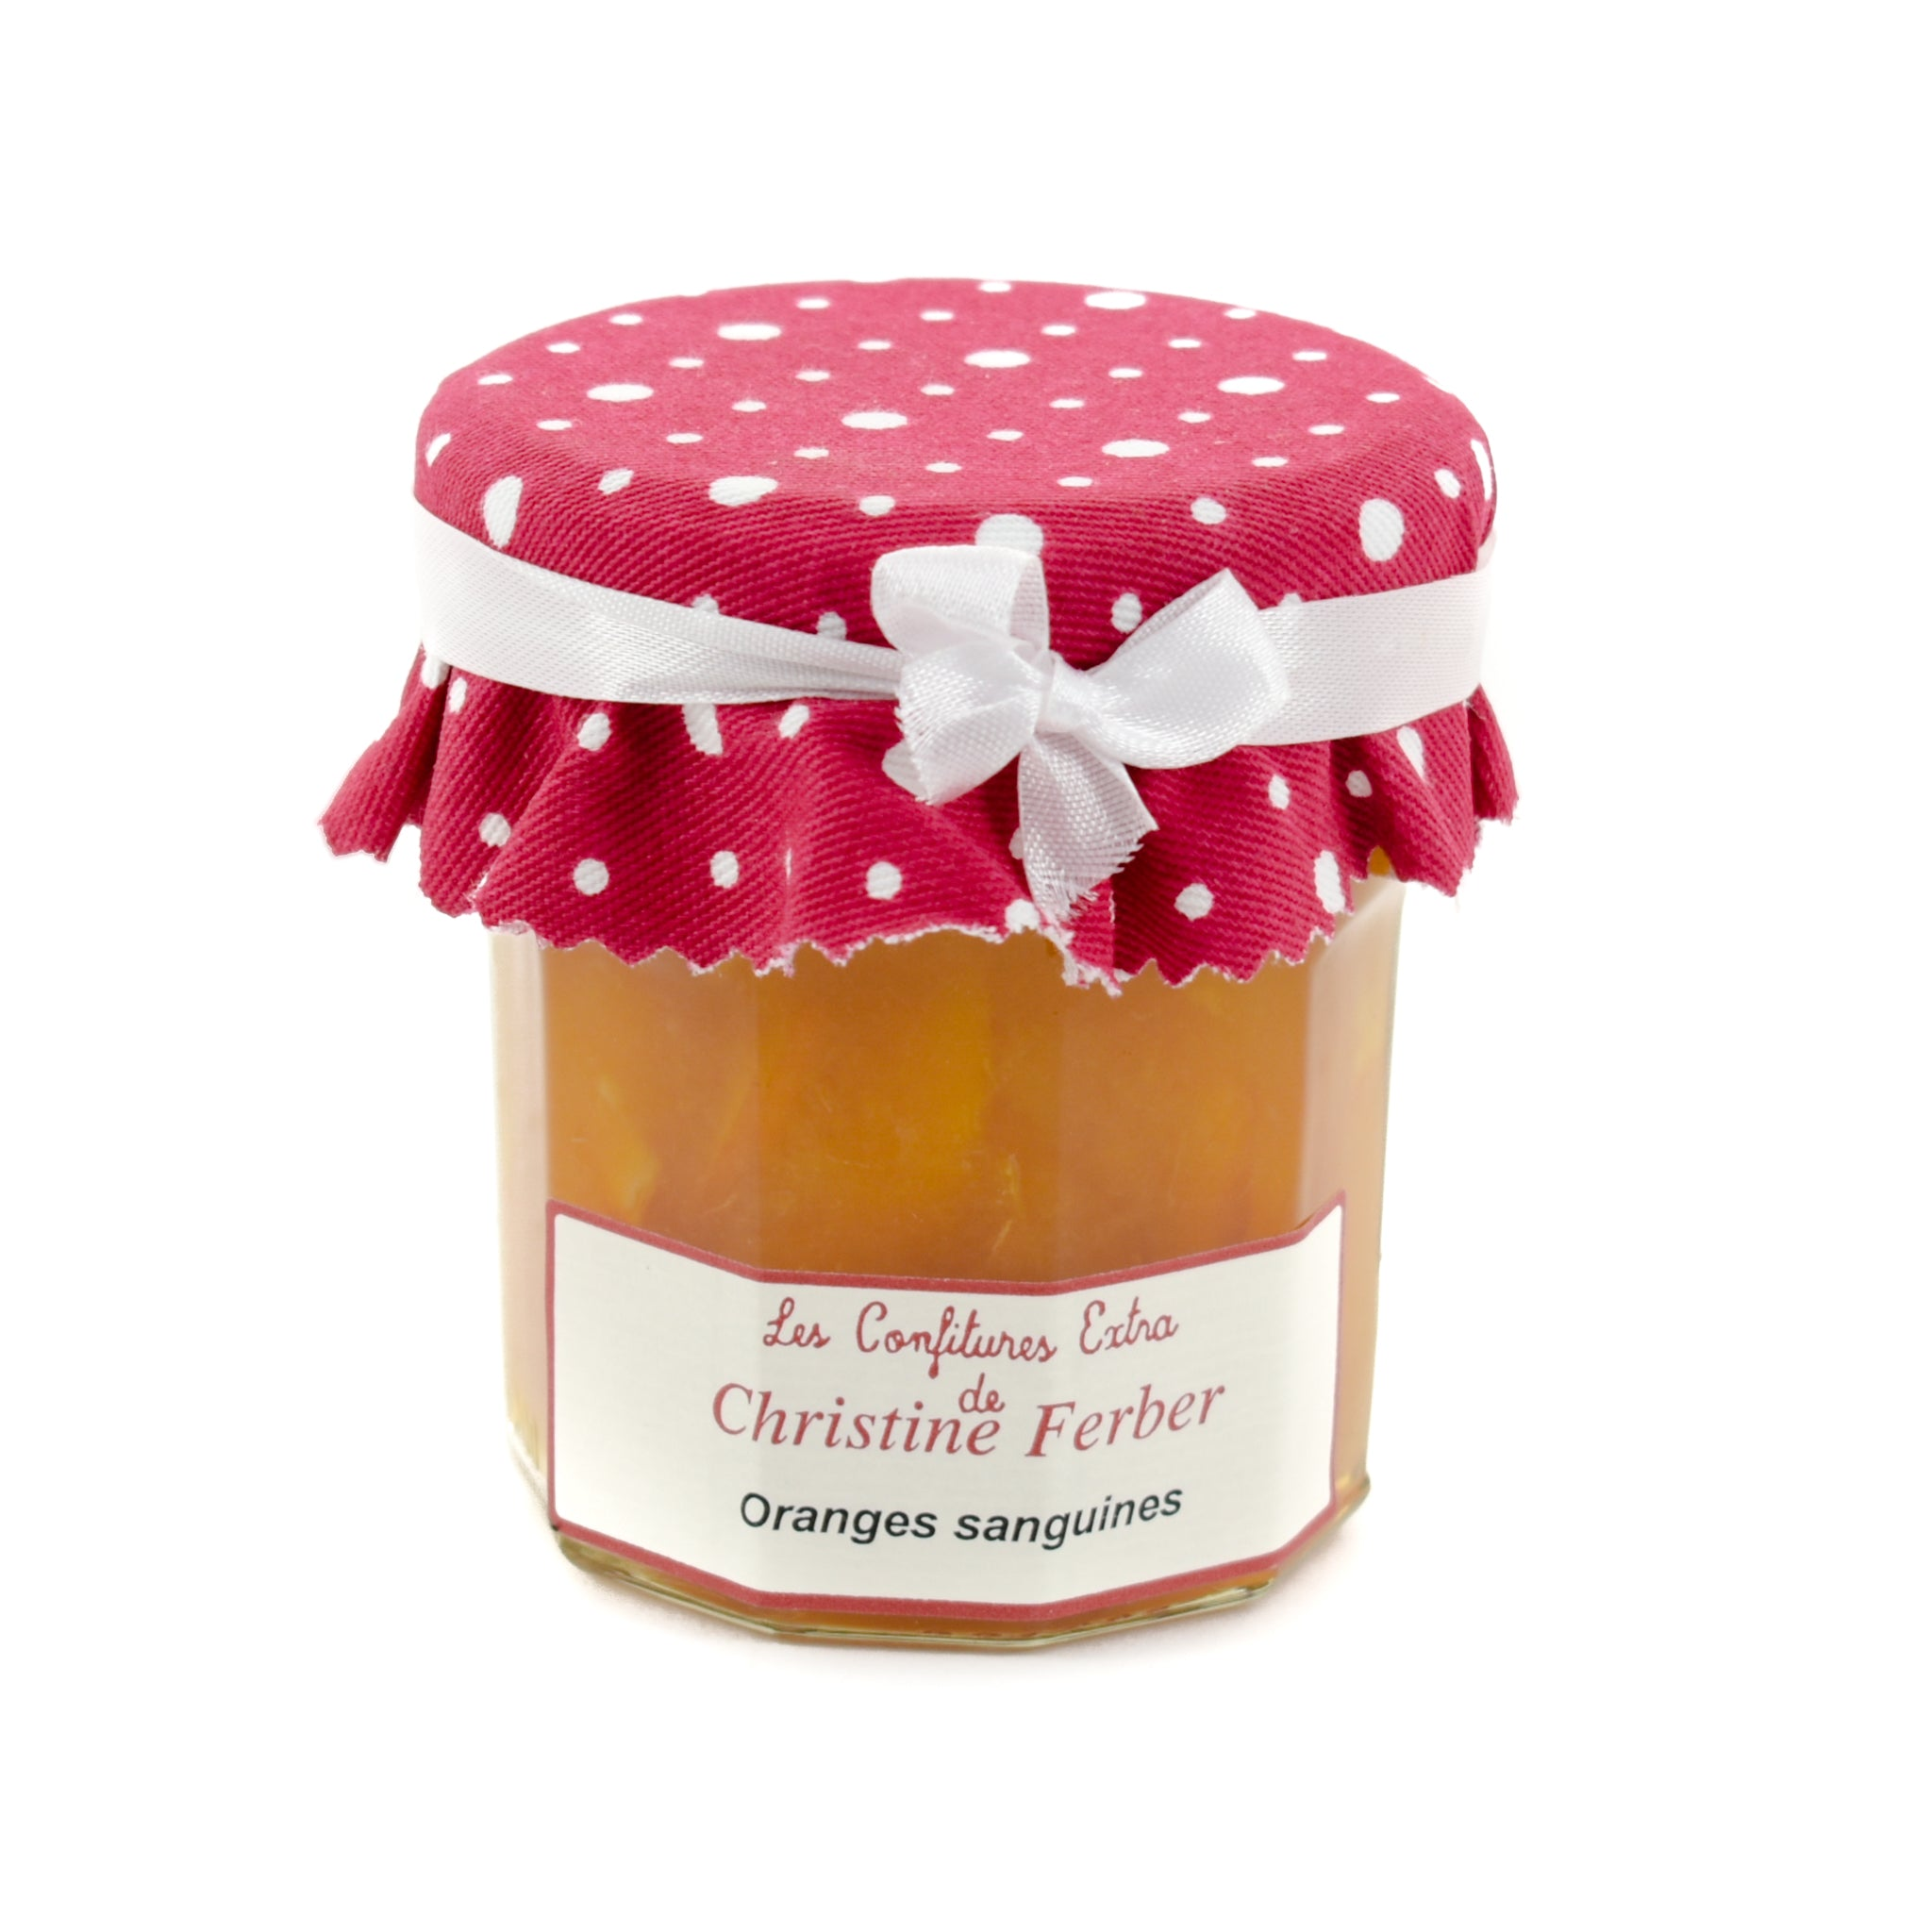 Christine Ferber Blood Orange Jam 220g